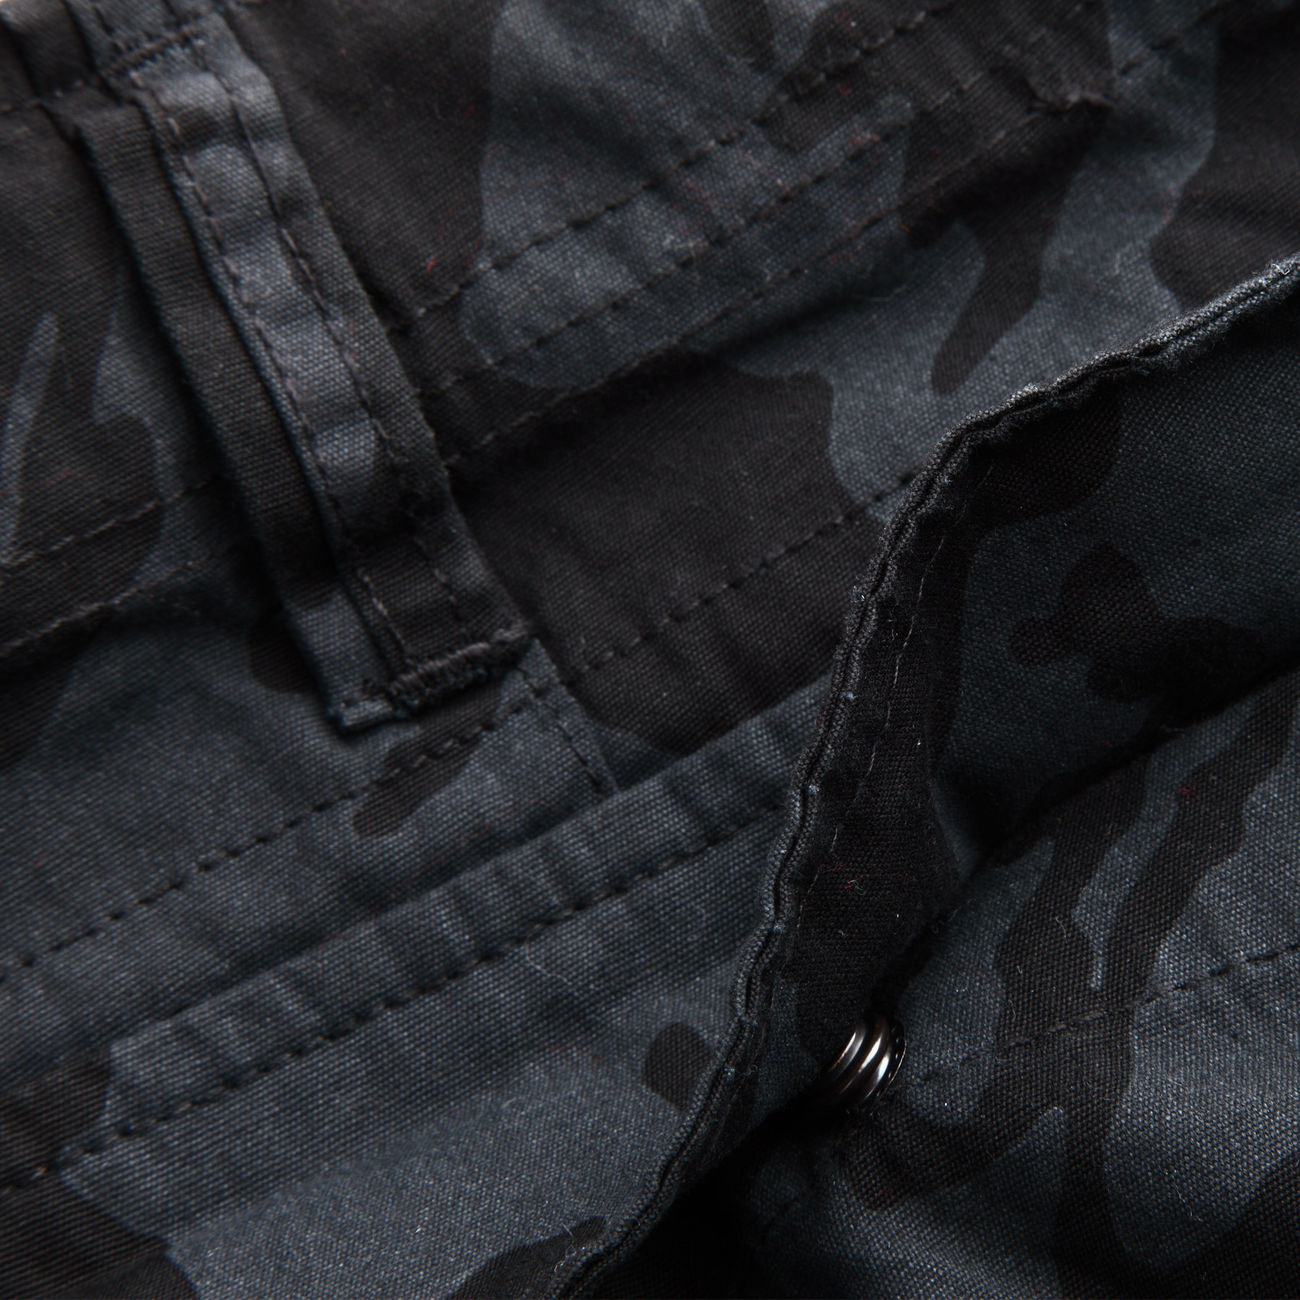 Kosumo Shorts stone washed night camo 4